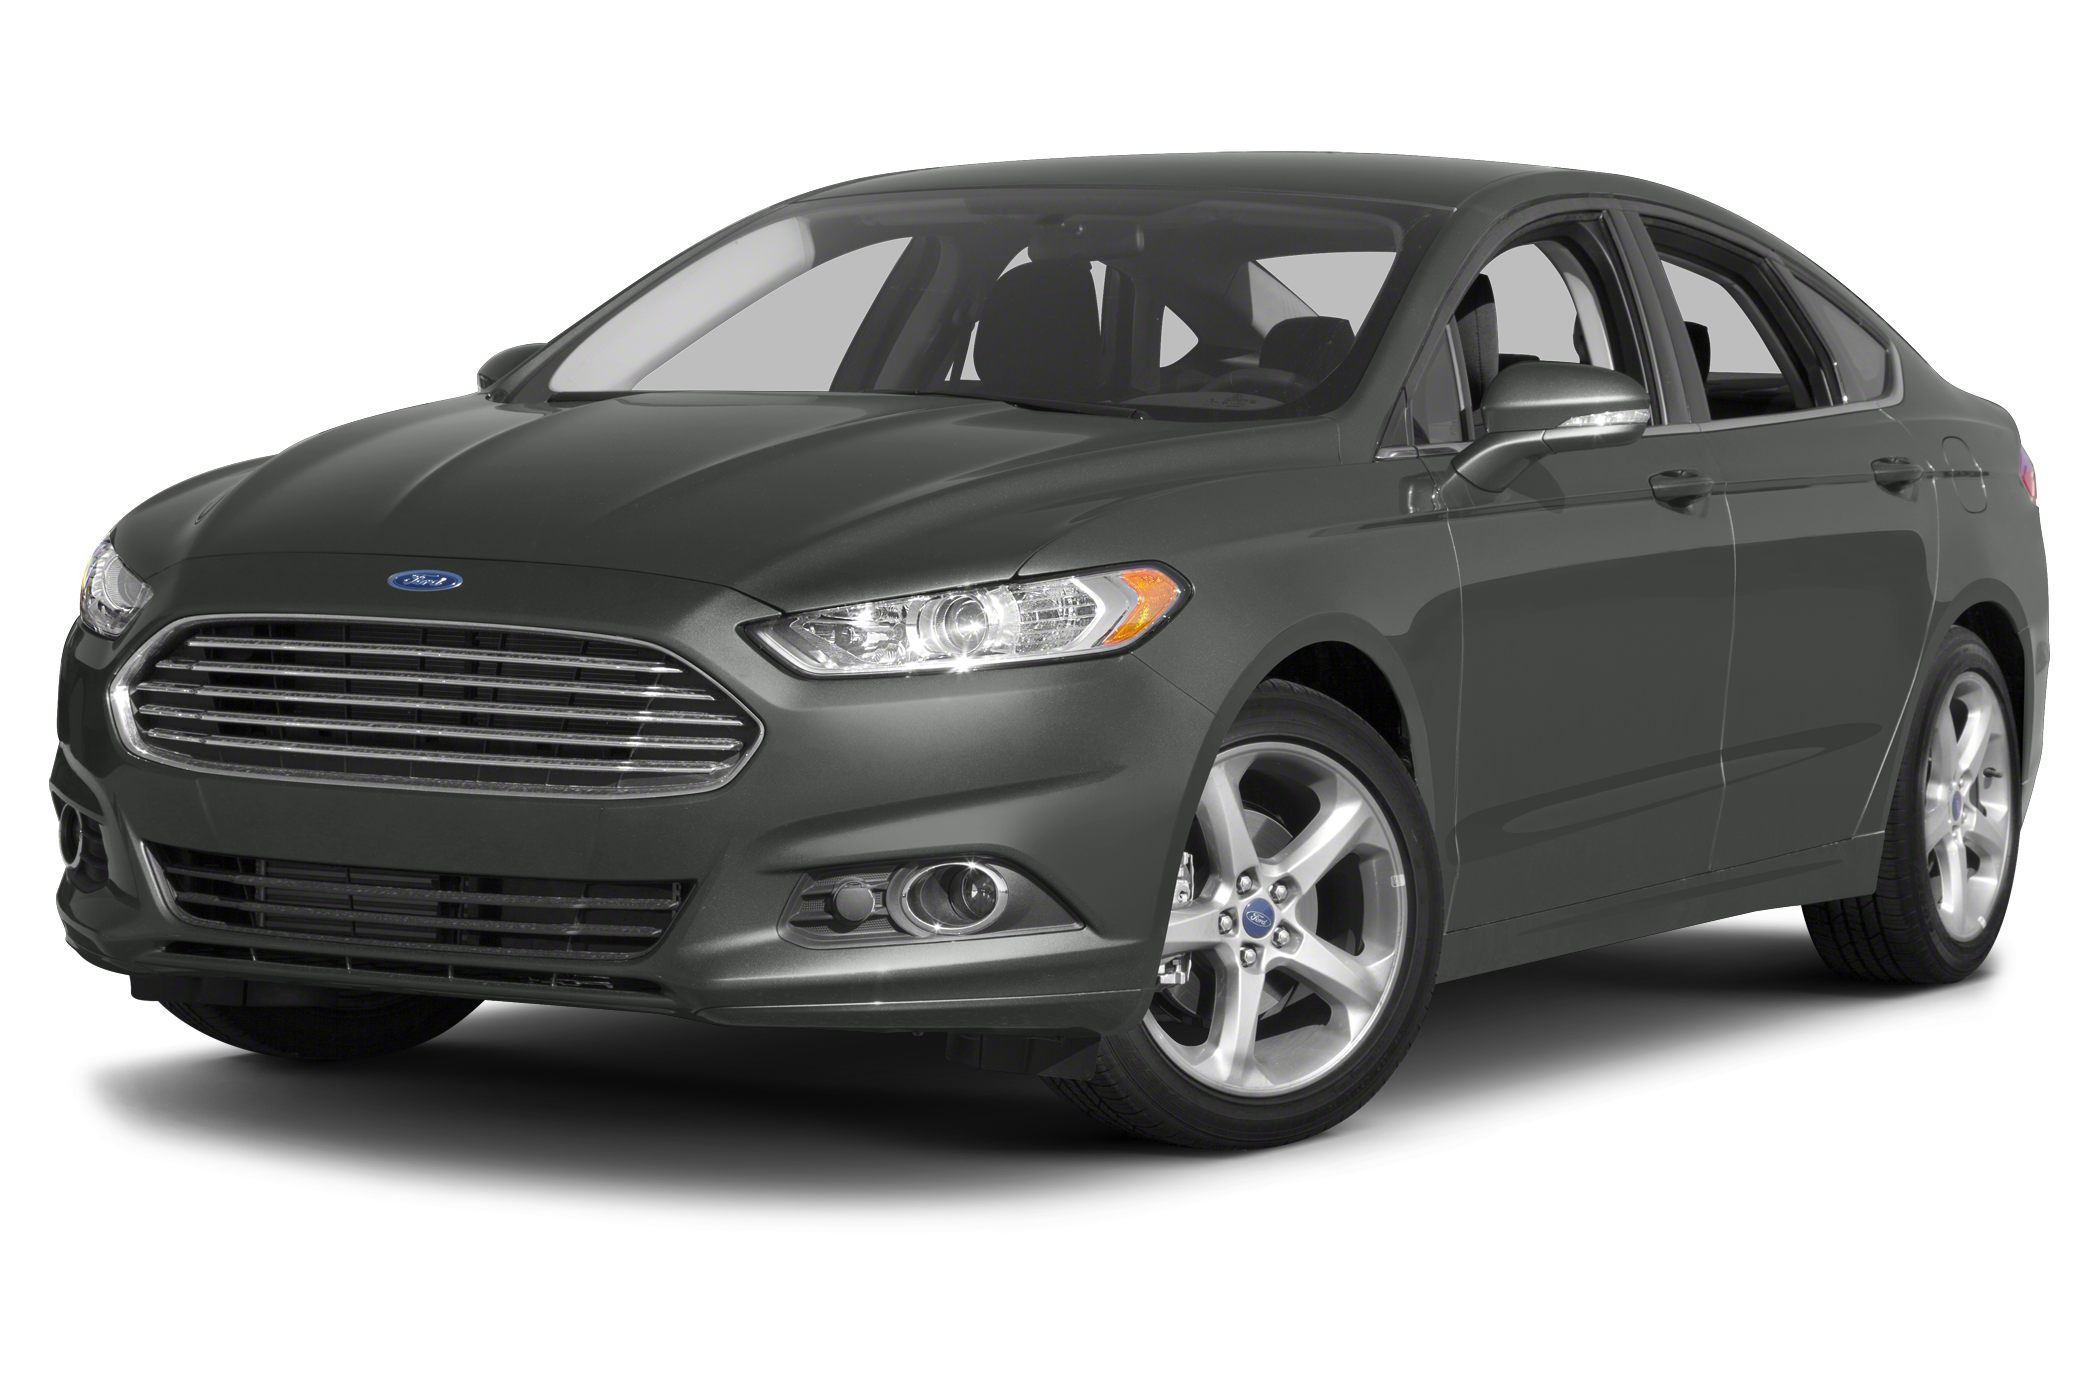 2014 Ford Fusion SE Sedan for sale in Clinton for $19,591 with 36,538 miles.